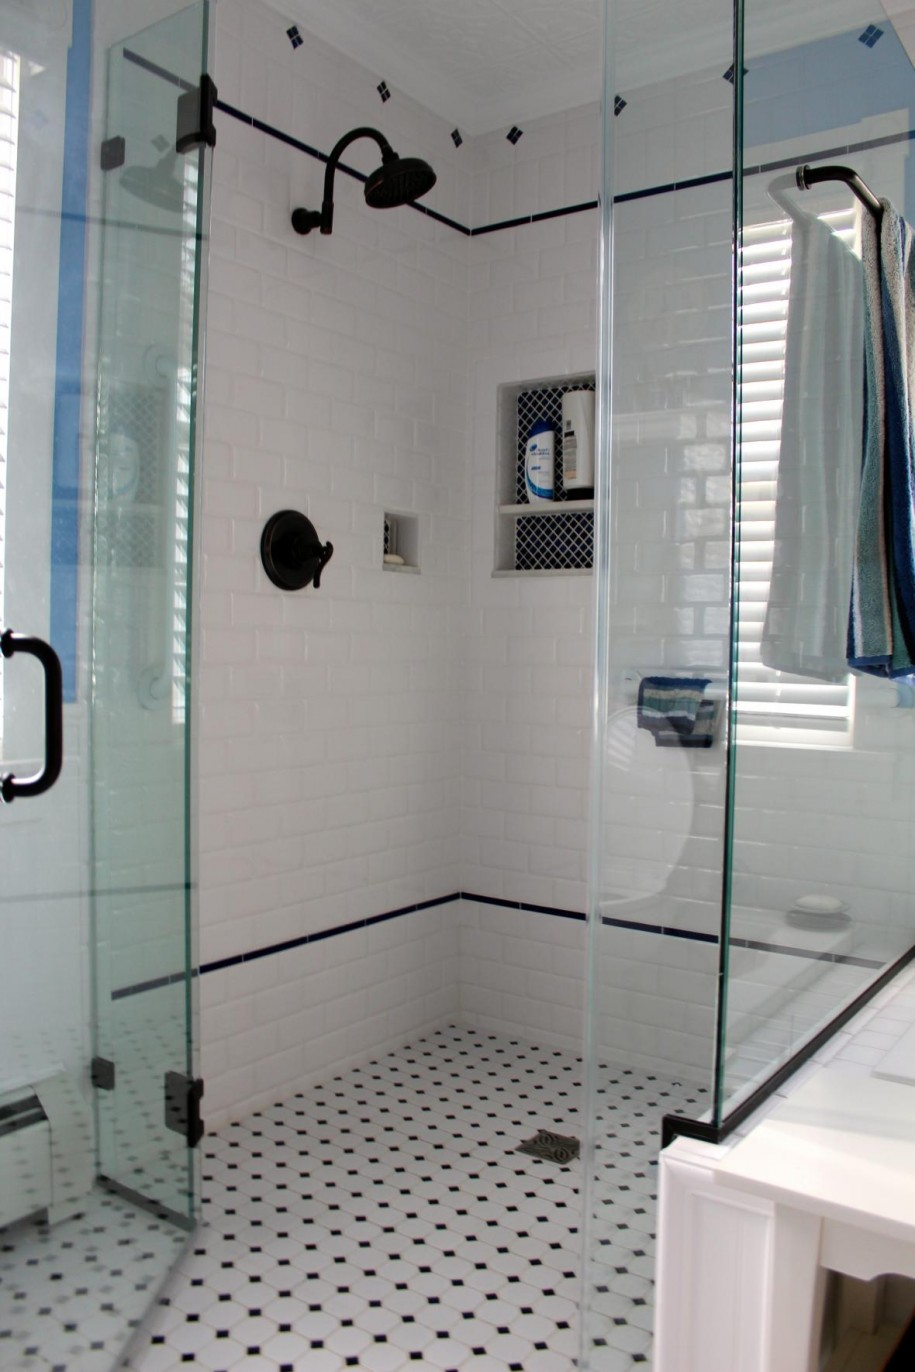 bathroom-white-bathroom-shower-design-with-white-wall-designed-with-small-shampoo-shelf-plus-black-faucet-combine-with-glass-door-also-towel-rack-glass-shower-tile-ideas